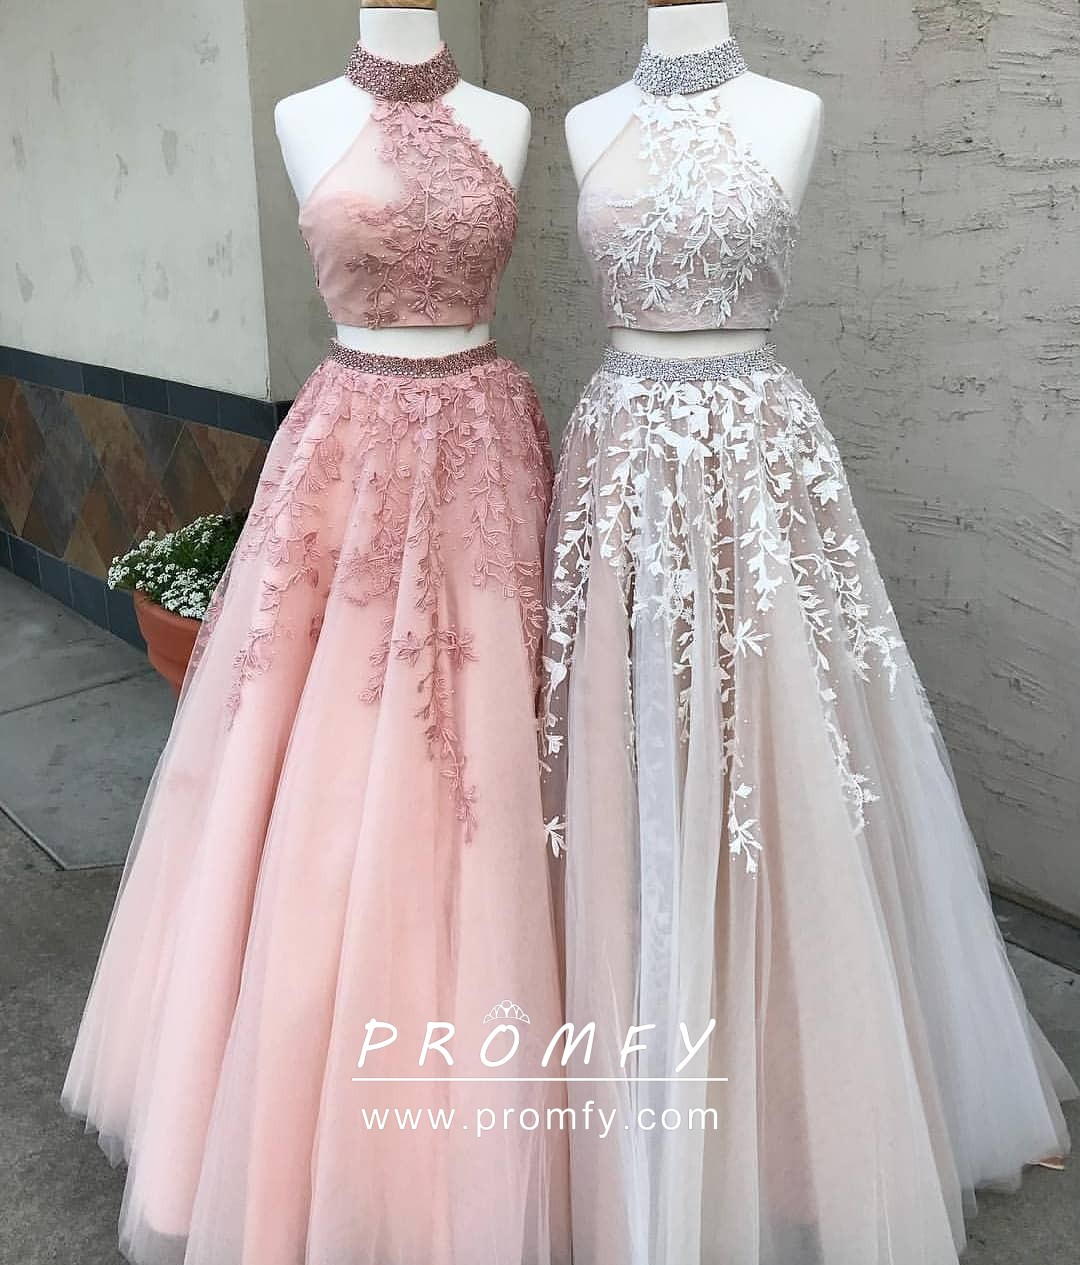 Beaded Halter High-neck Two-piece Lace Appliqued Designer Prom Dresses